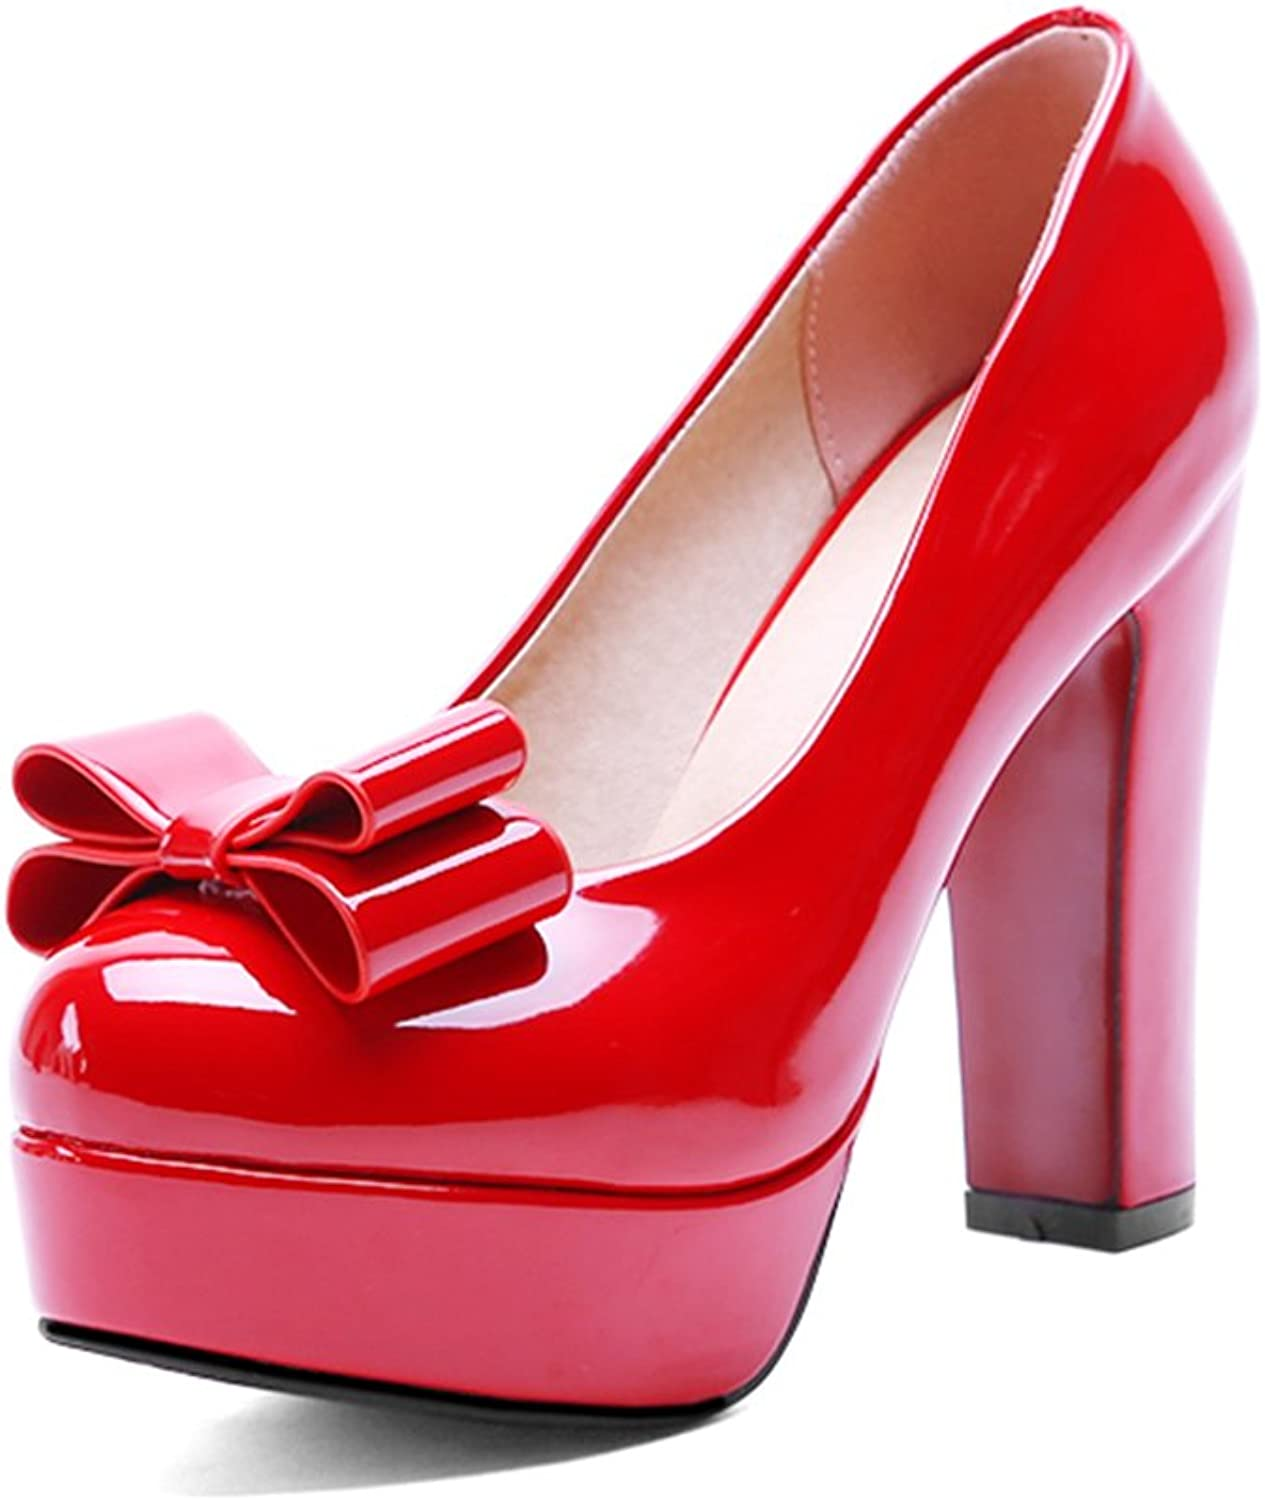 Lucksender Womens Round Toe High Chunky Heels Platform Pumps with Bowknot